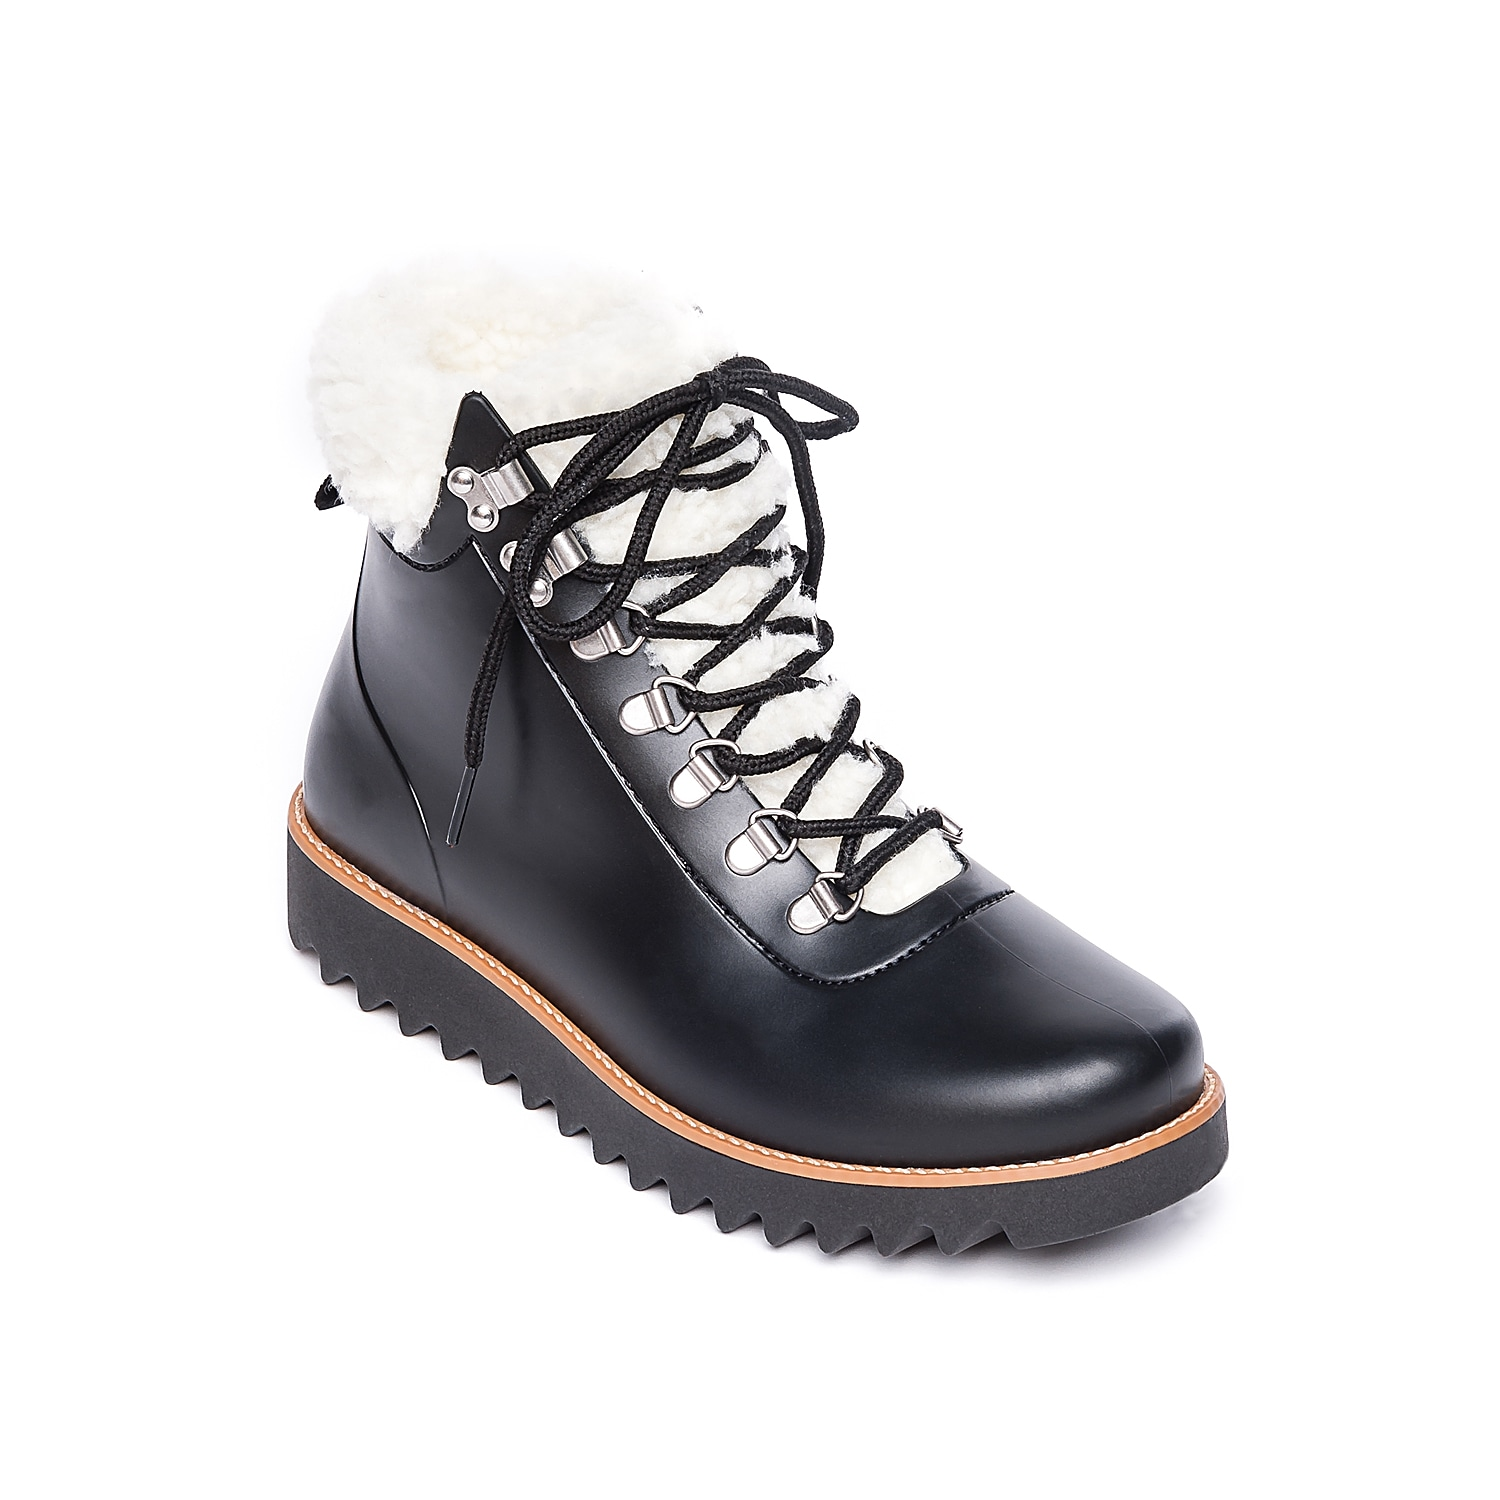 Easily take on any wet day when wearing the Wiley rain boots from Bernardo. This lace-up pair features a rubber design and a sherpa collar for an extra-cozy touch! Click here for Boot Measuring Guide.